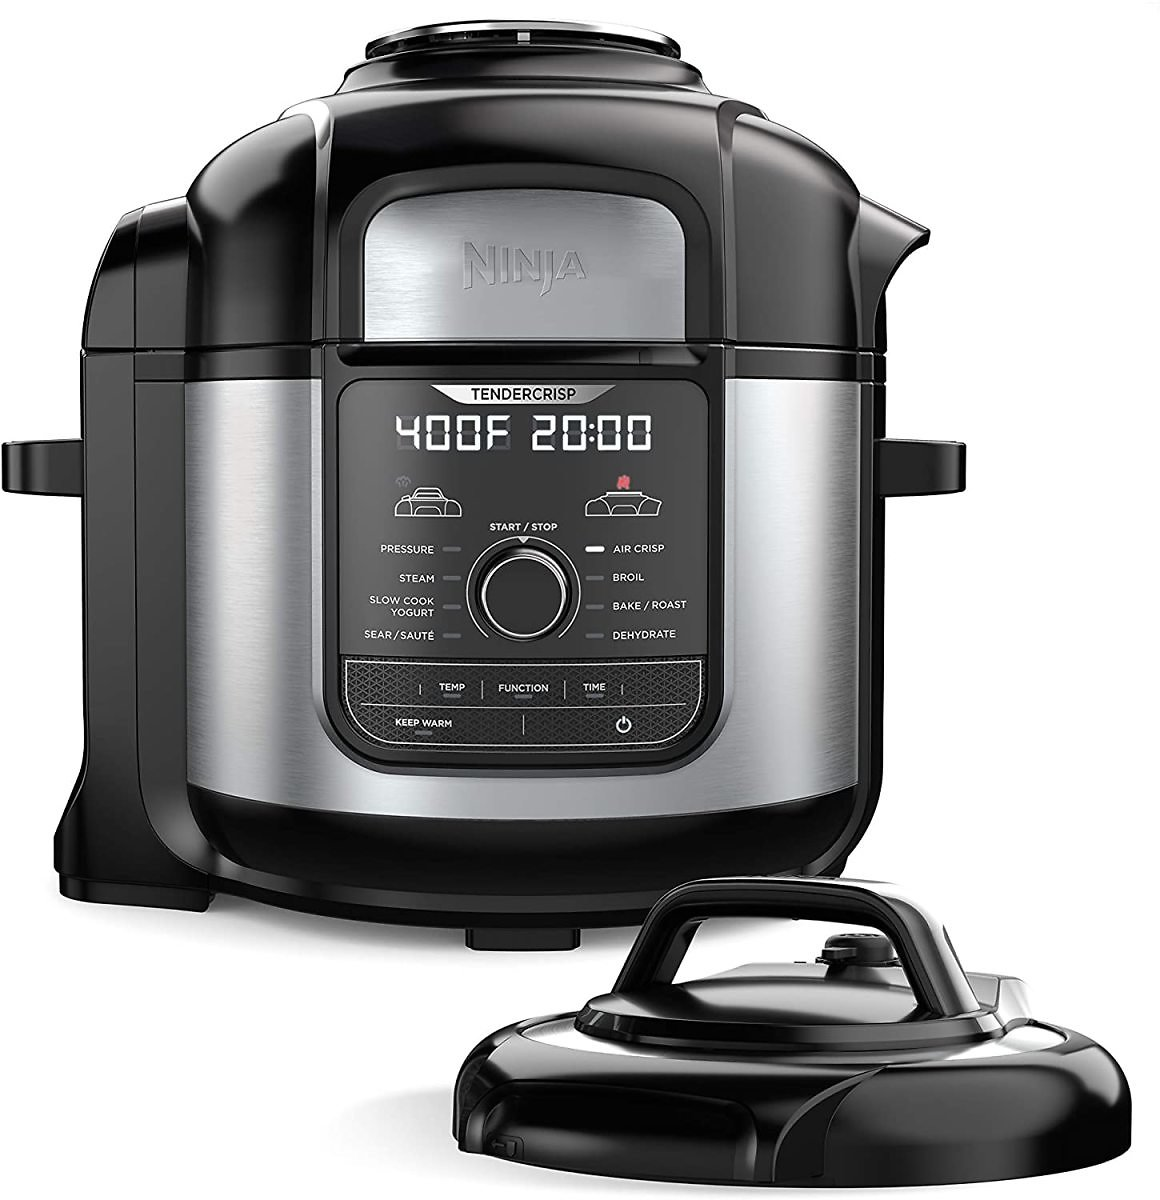 Ninja Foodi 9-in-1 Pressure, Broil, Dehydrate, Slow Cooker, Air Fryer, and More, with 8 Quart Capacity and 45 Recipe Book, and a Stainless Finish